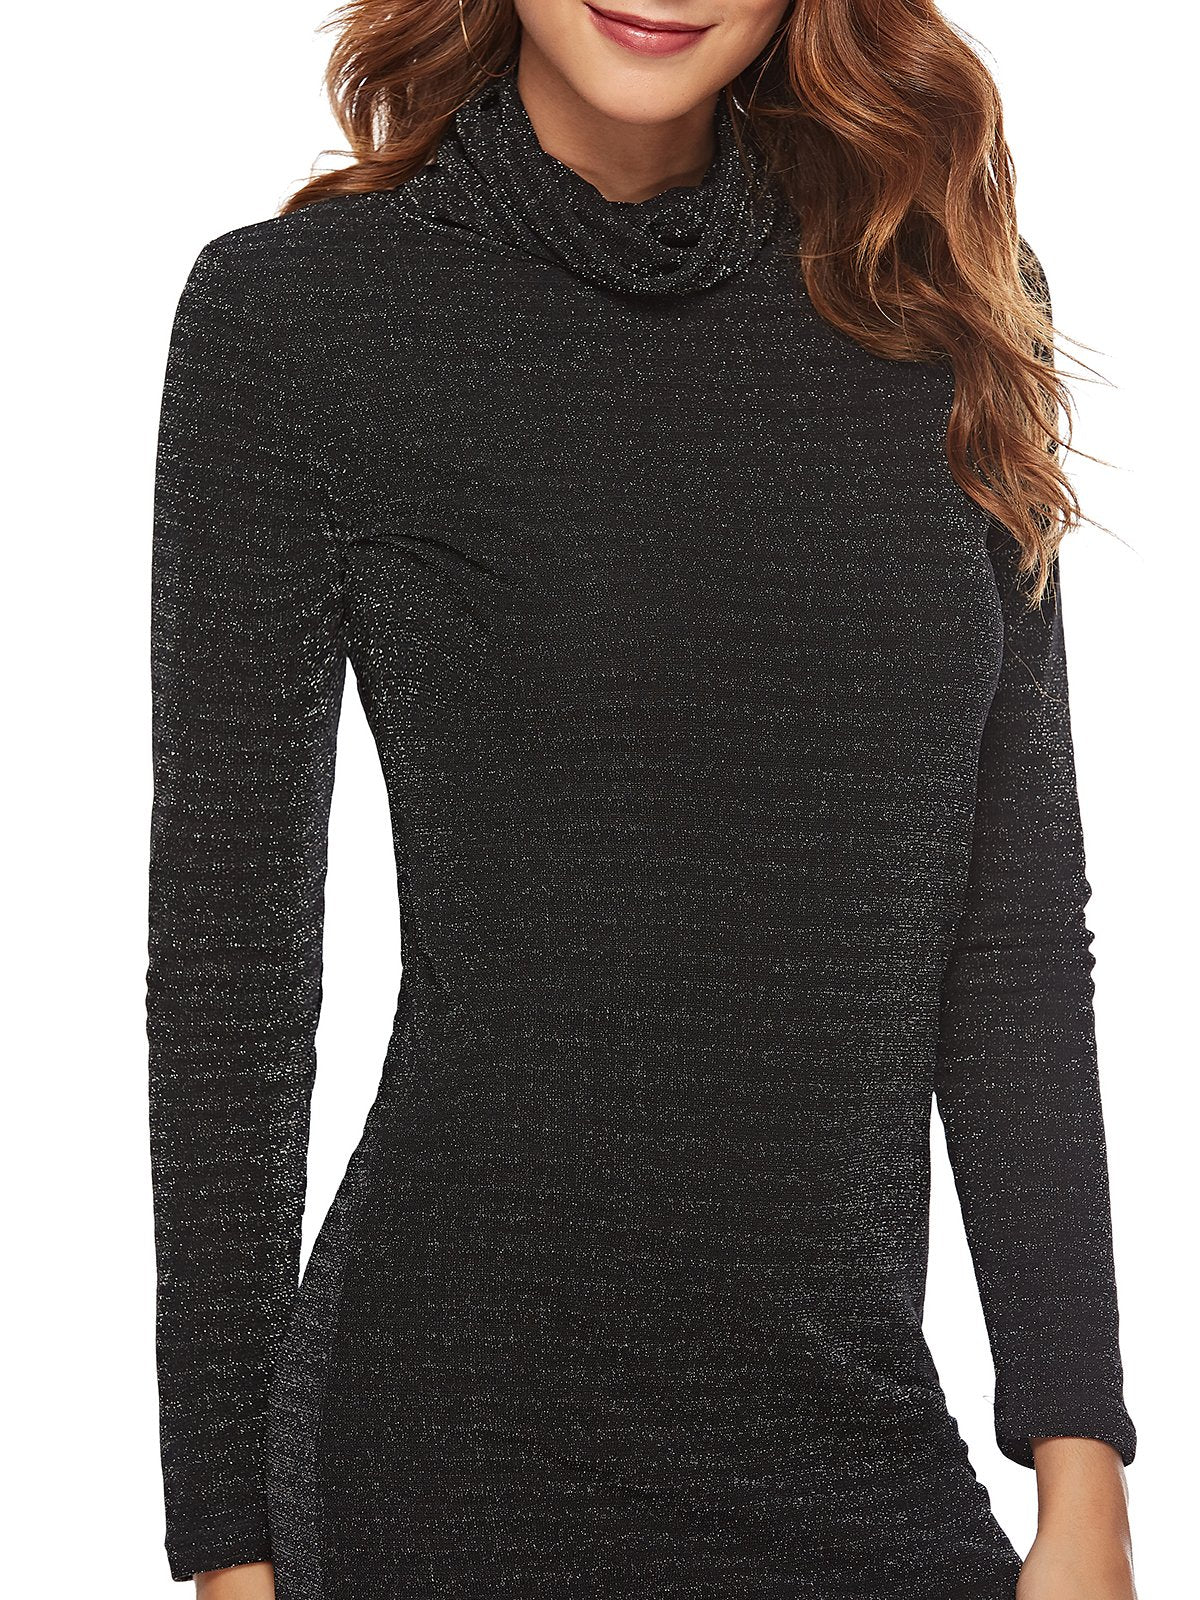 Turtle Neck Black Sheath Shimmer Tunics